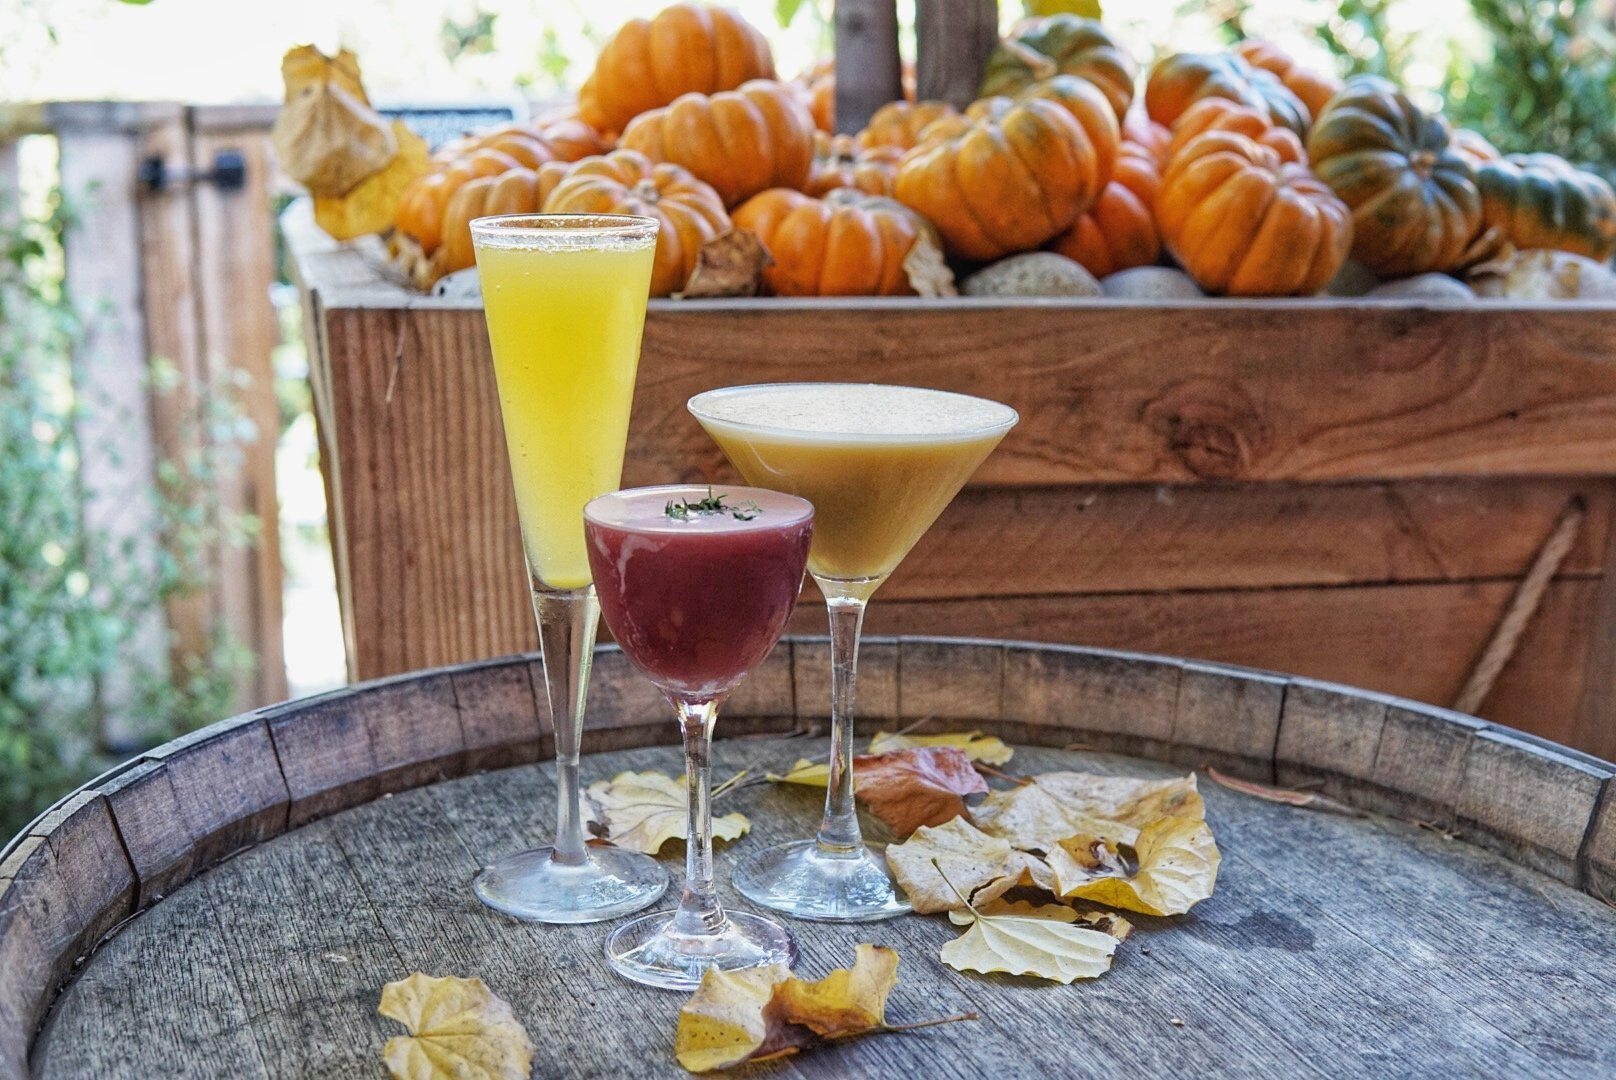 This Orange County Restaurant is a Must Visit During the Holidays!